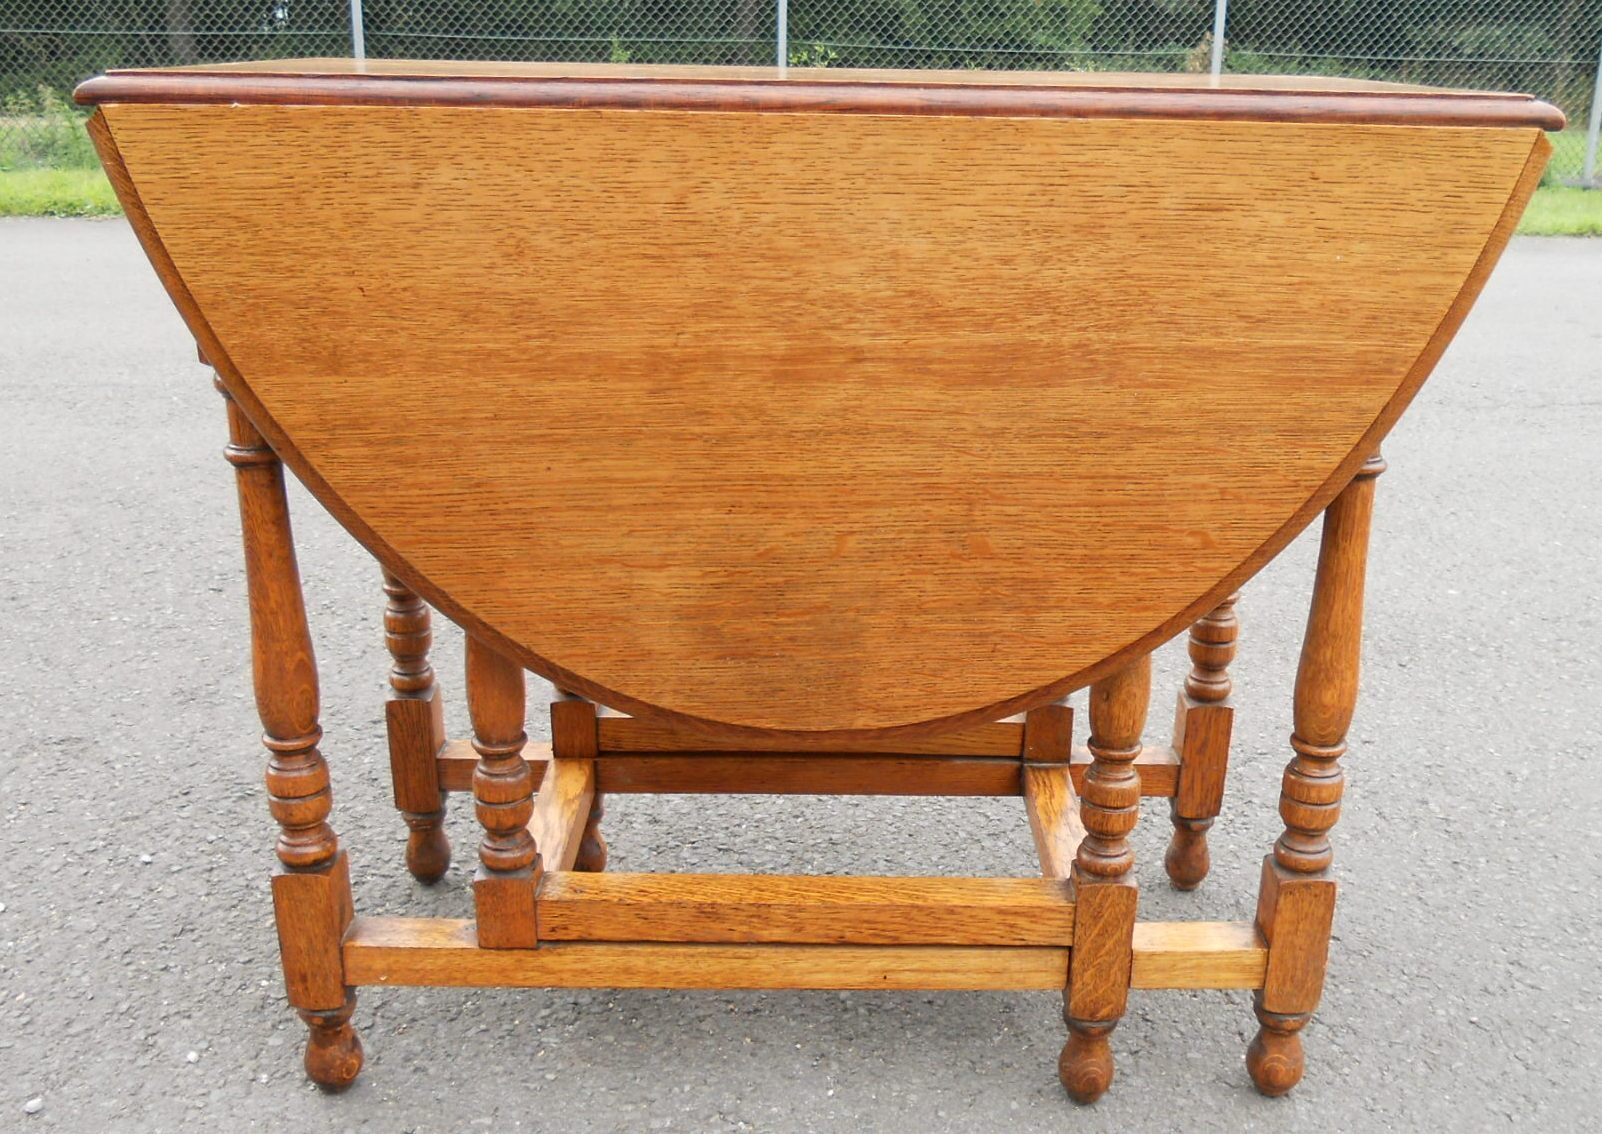 Gateleg table trendy mid century modern gateleg table with folding chairs picked vintage with - Gateleg table and chairs ...